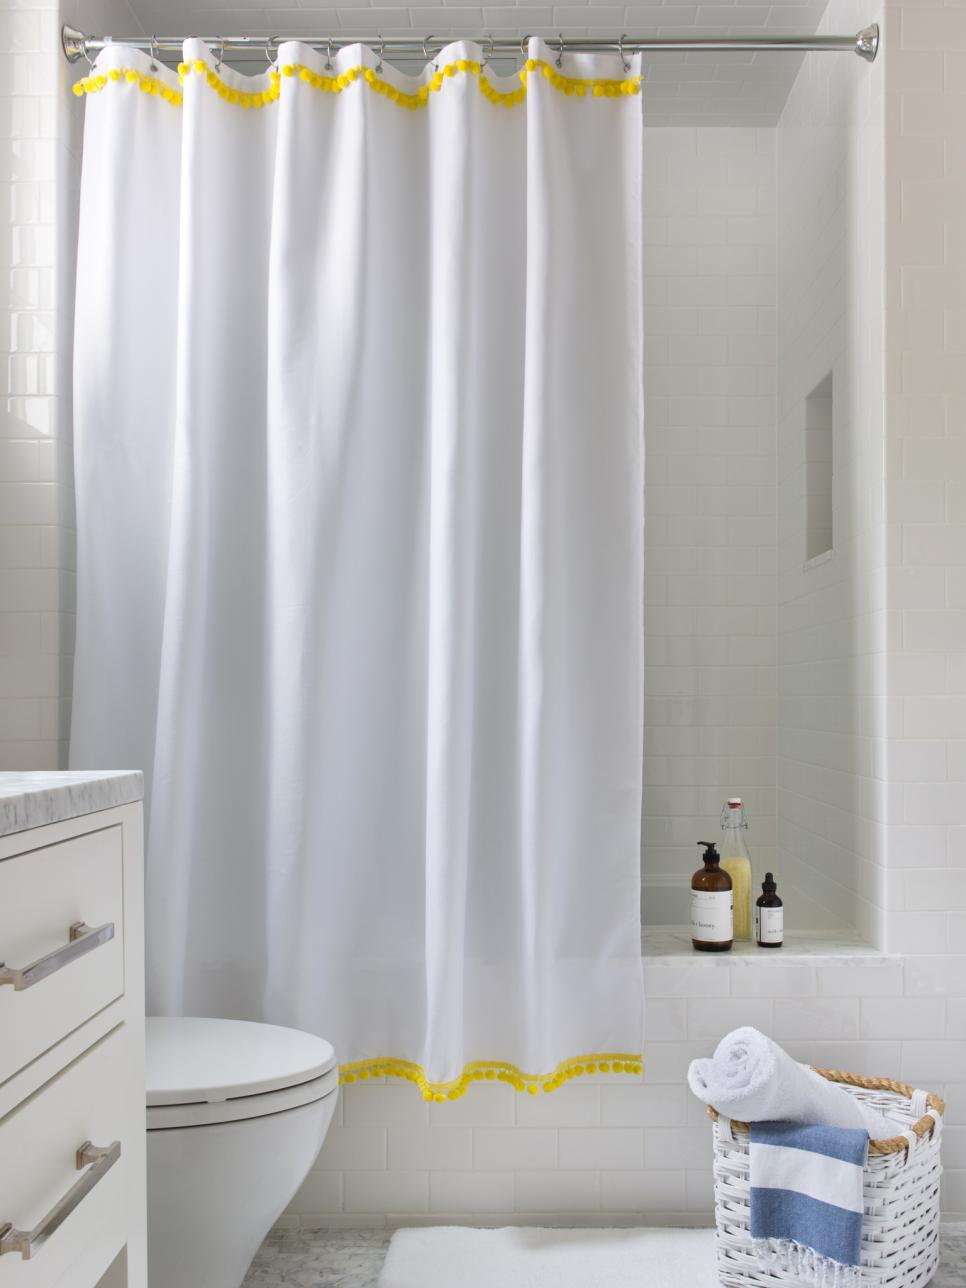 3 easy ways to upcycle a plain shower curtain hgtv - Shower Curtain Design Ideas